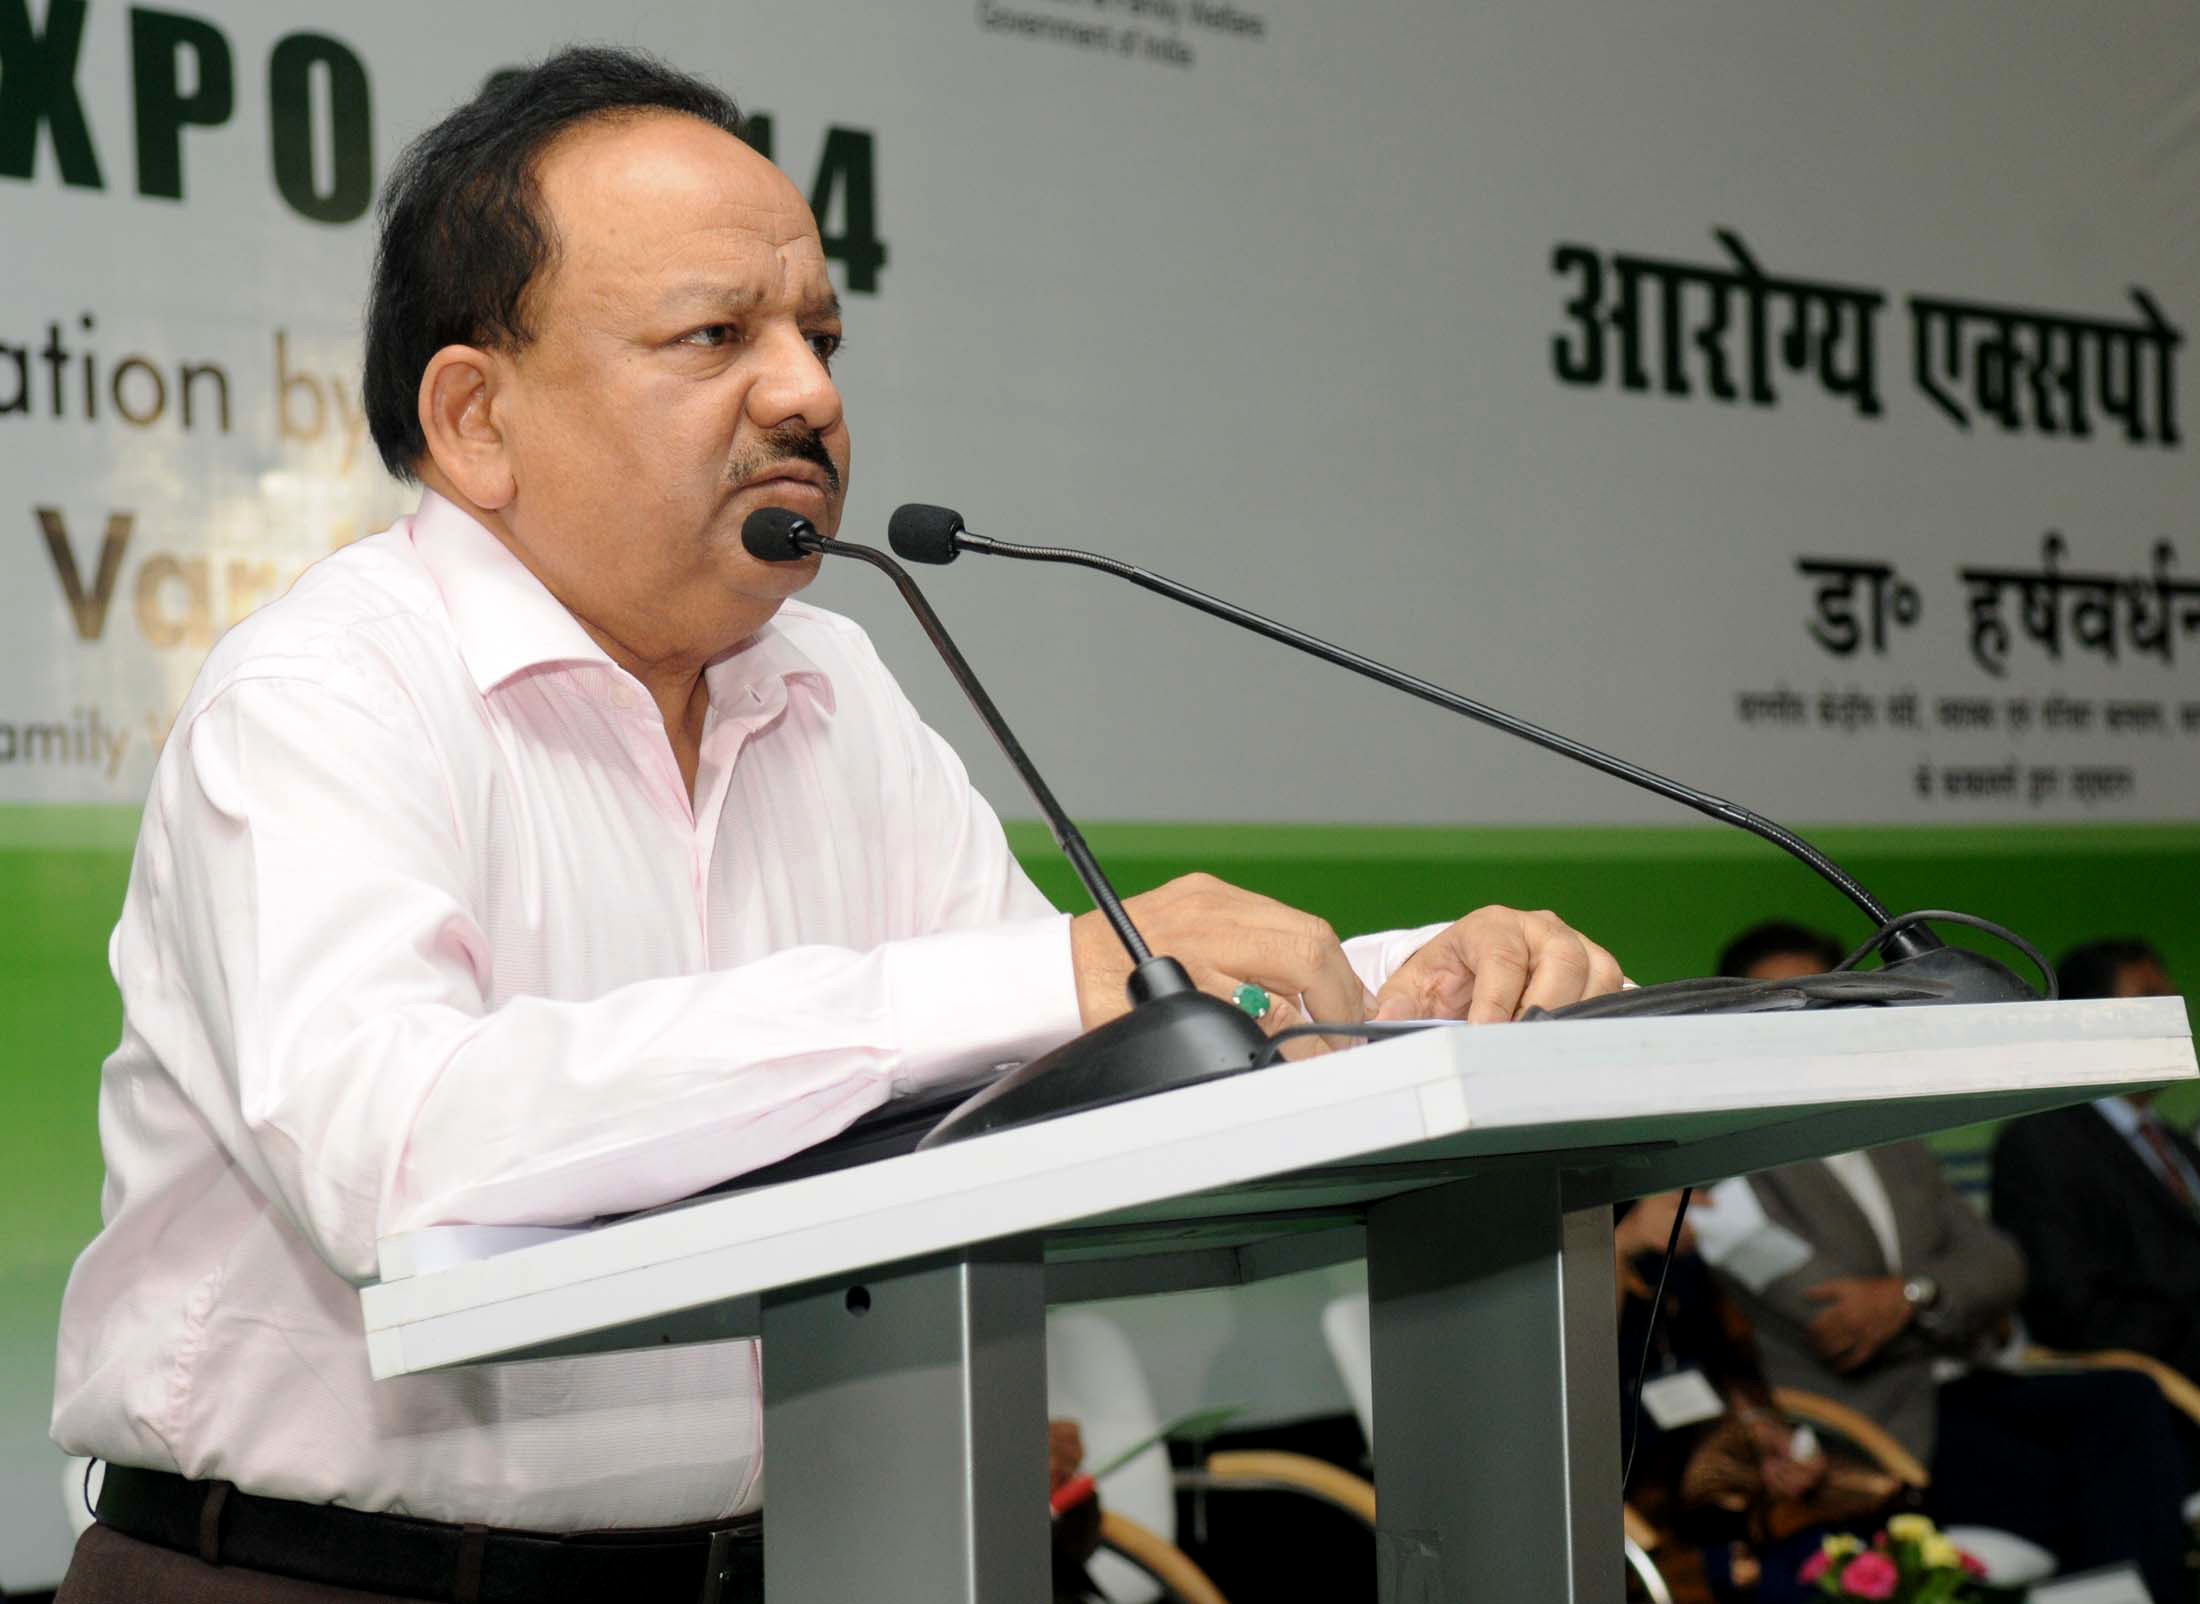 Separate Central Drug Controller for Ayurveda: Dr. Harsh Vardhan